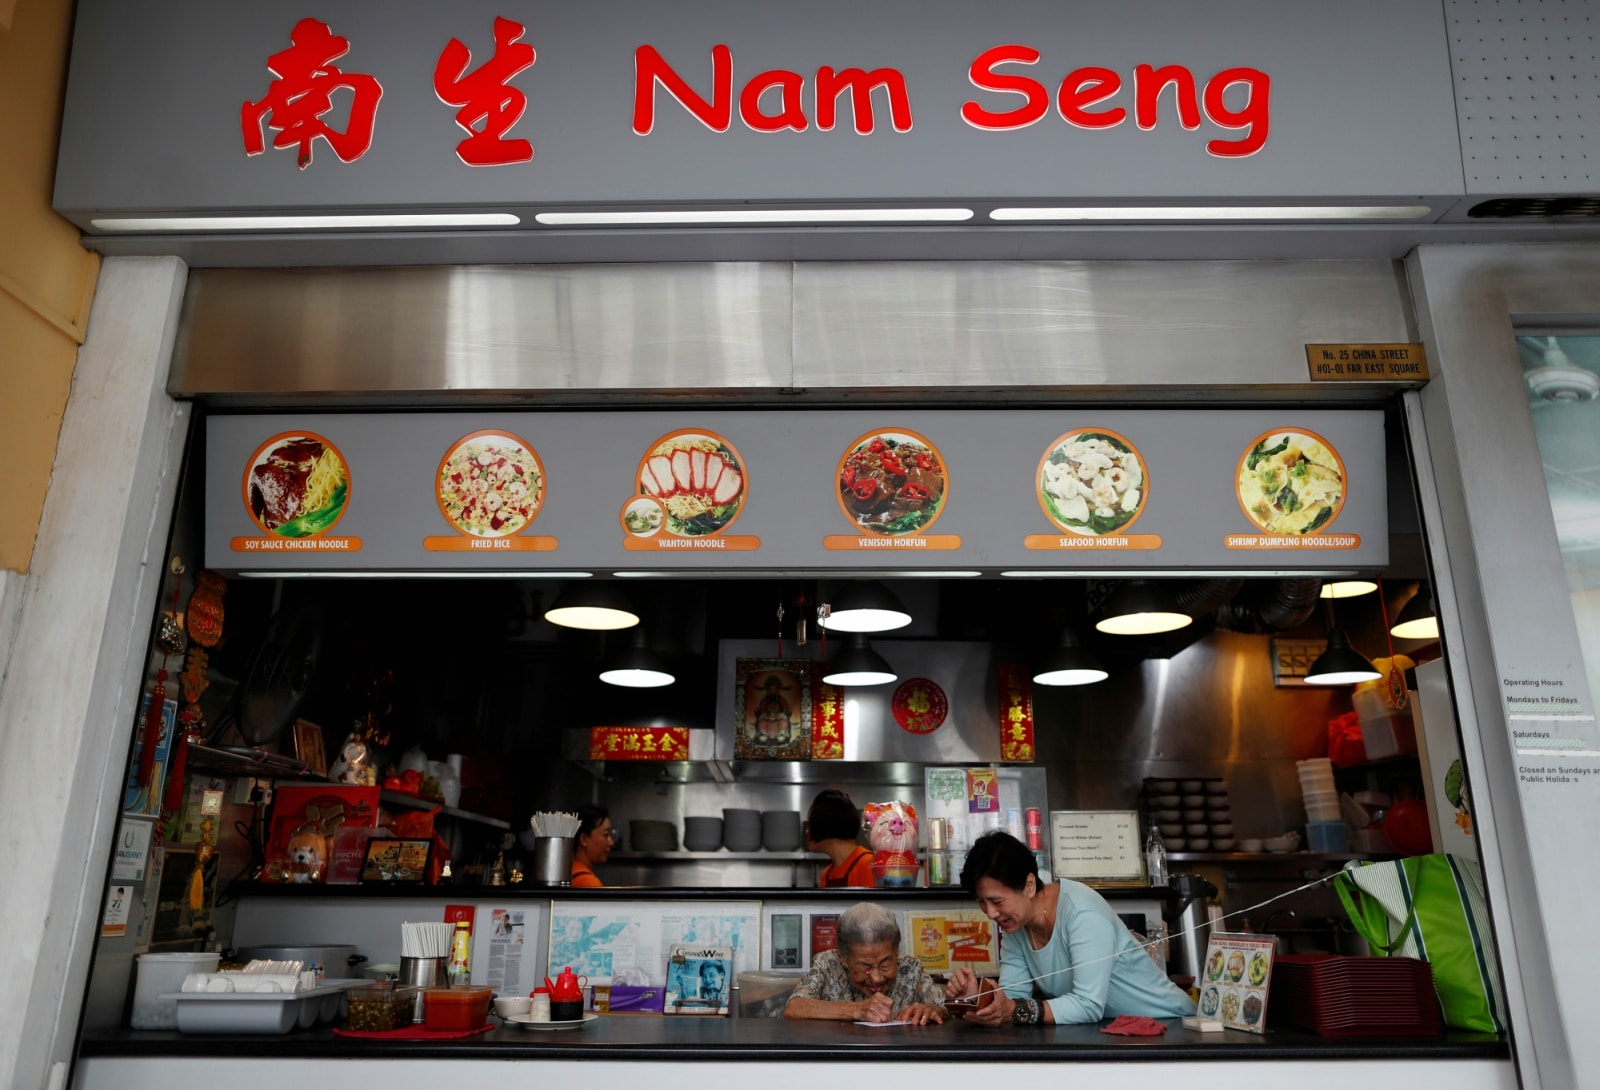 Hawker Leong Yuet Meng, 90, of Nam Seng Noodle House, discusses with a friend about what lottery numbers to buy at her shop in Singapore February 22, 2019. REUTERS/Edgar Su